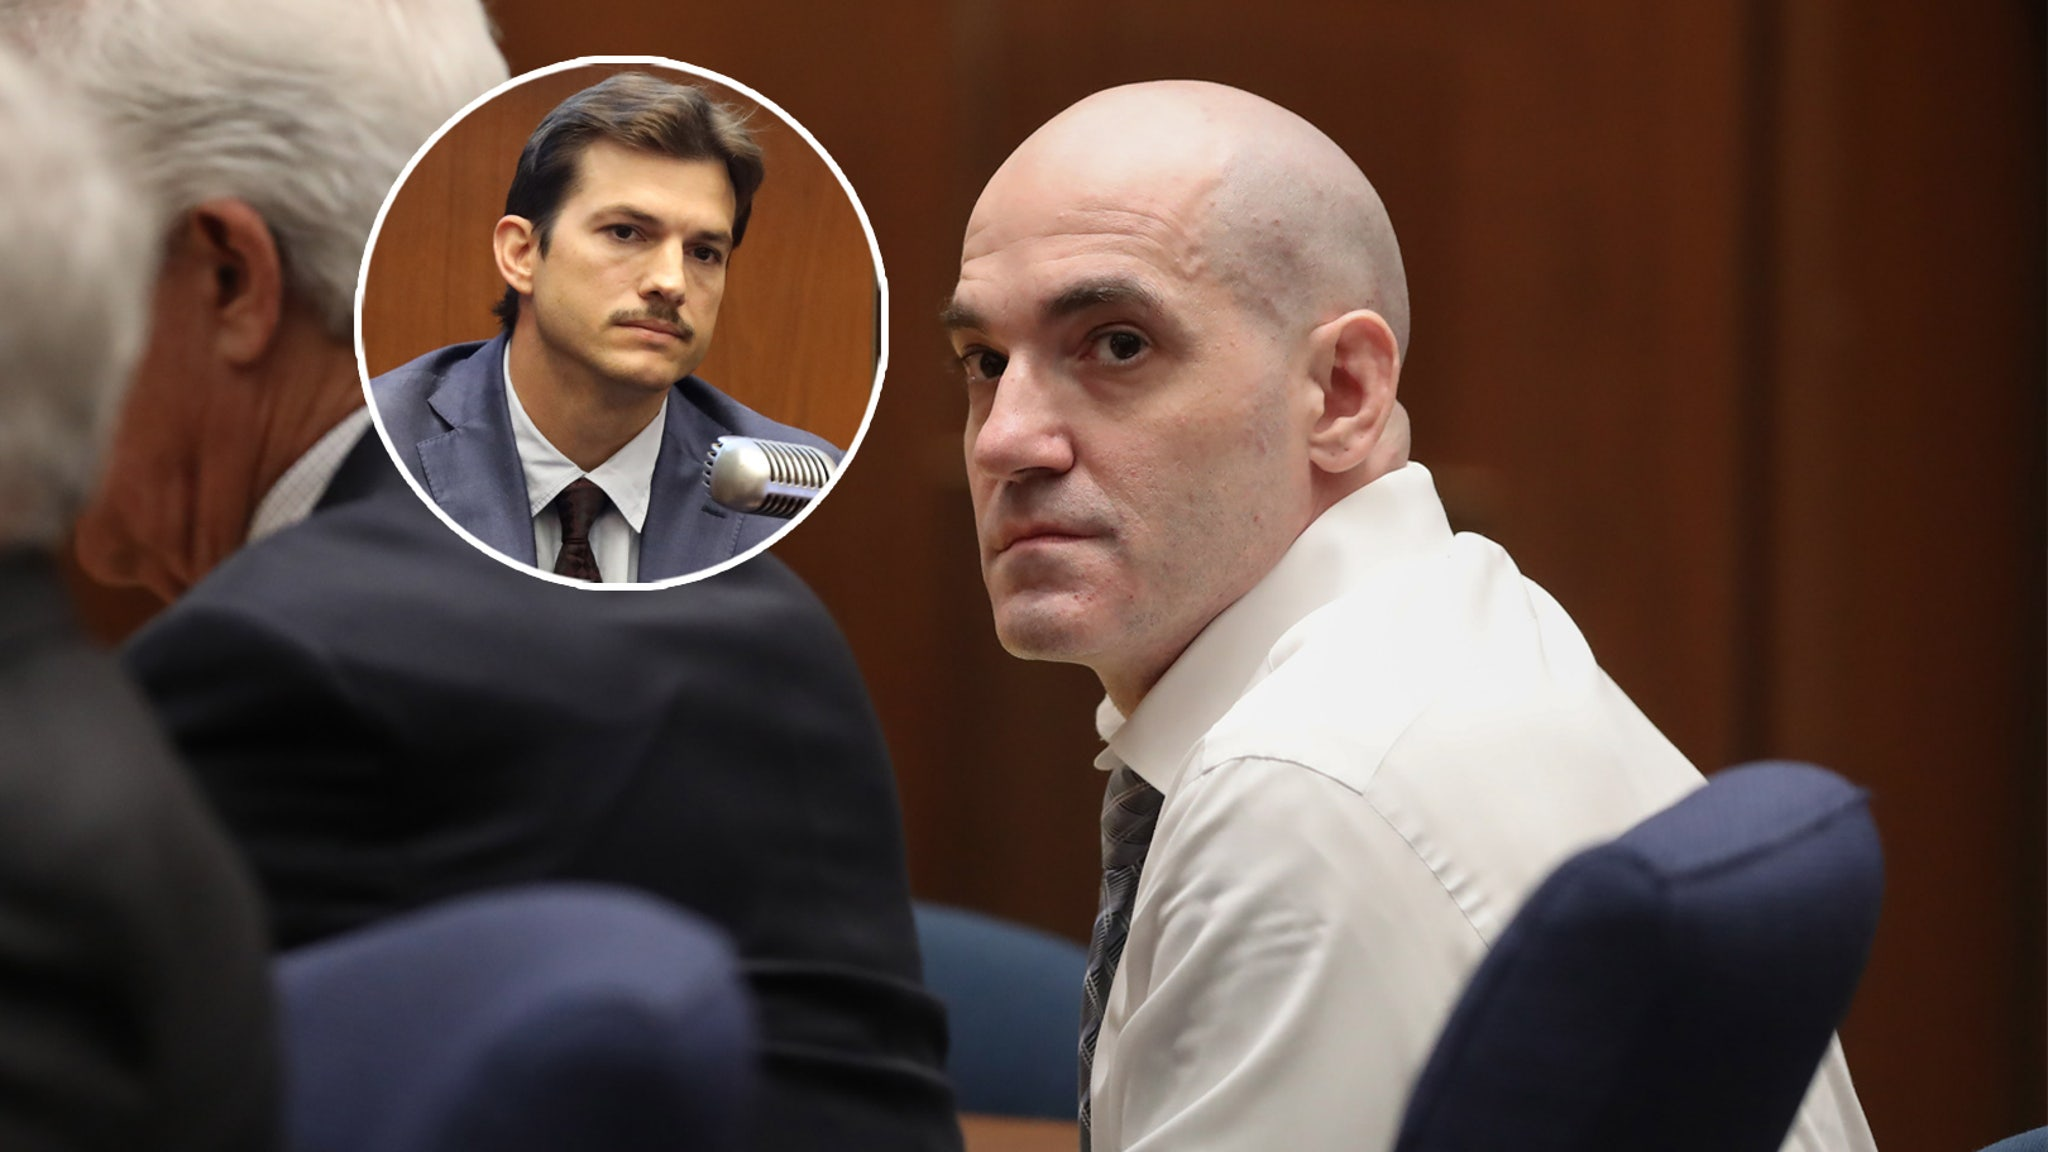 Hollywood Ripper Who Killed Aston Kutcher Sentenced To Death